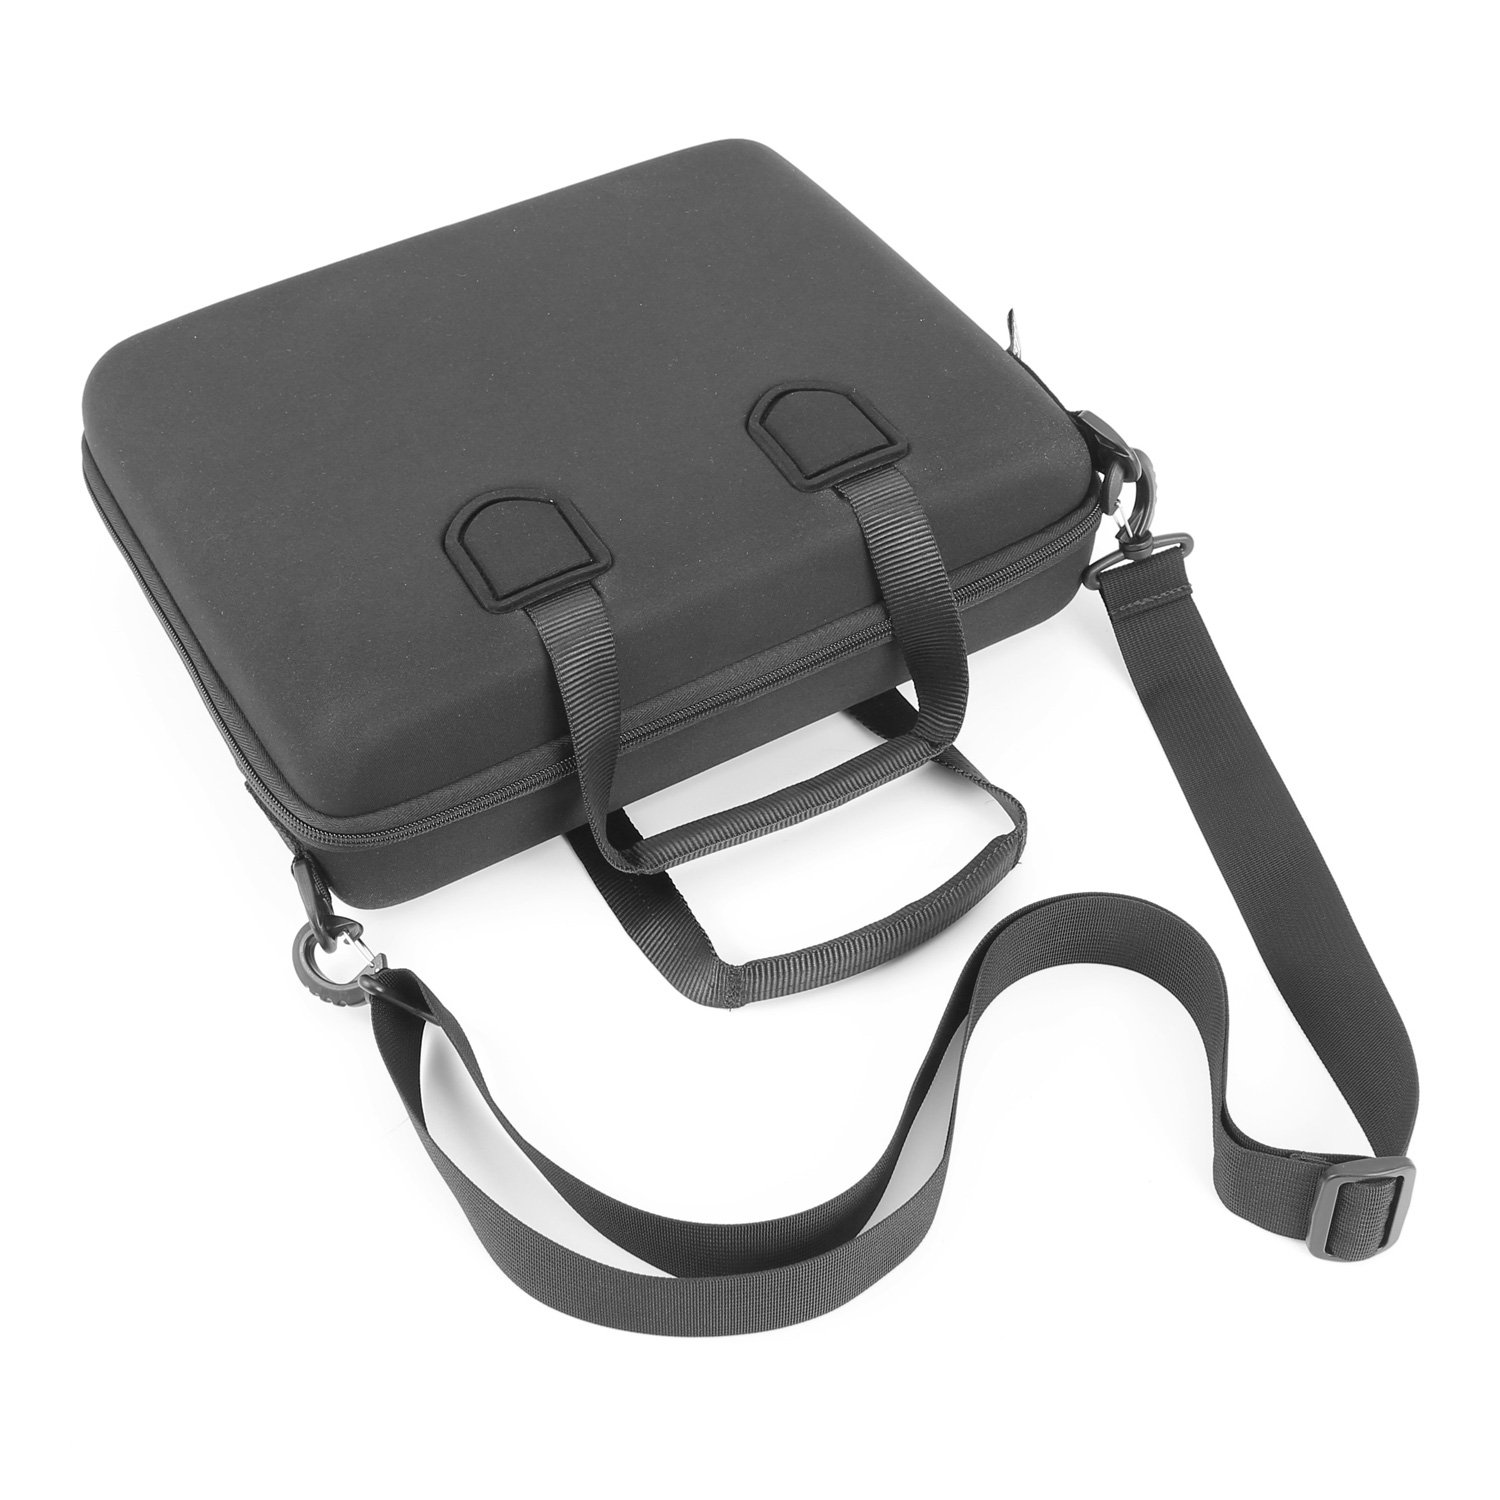 Case for HP Officejet 150 and HP Officejet 100